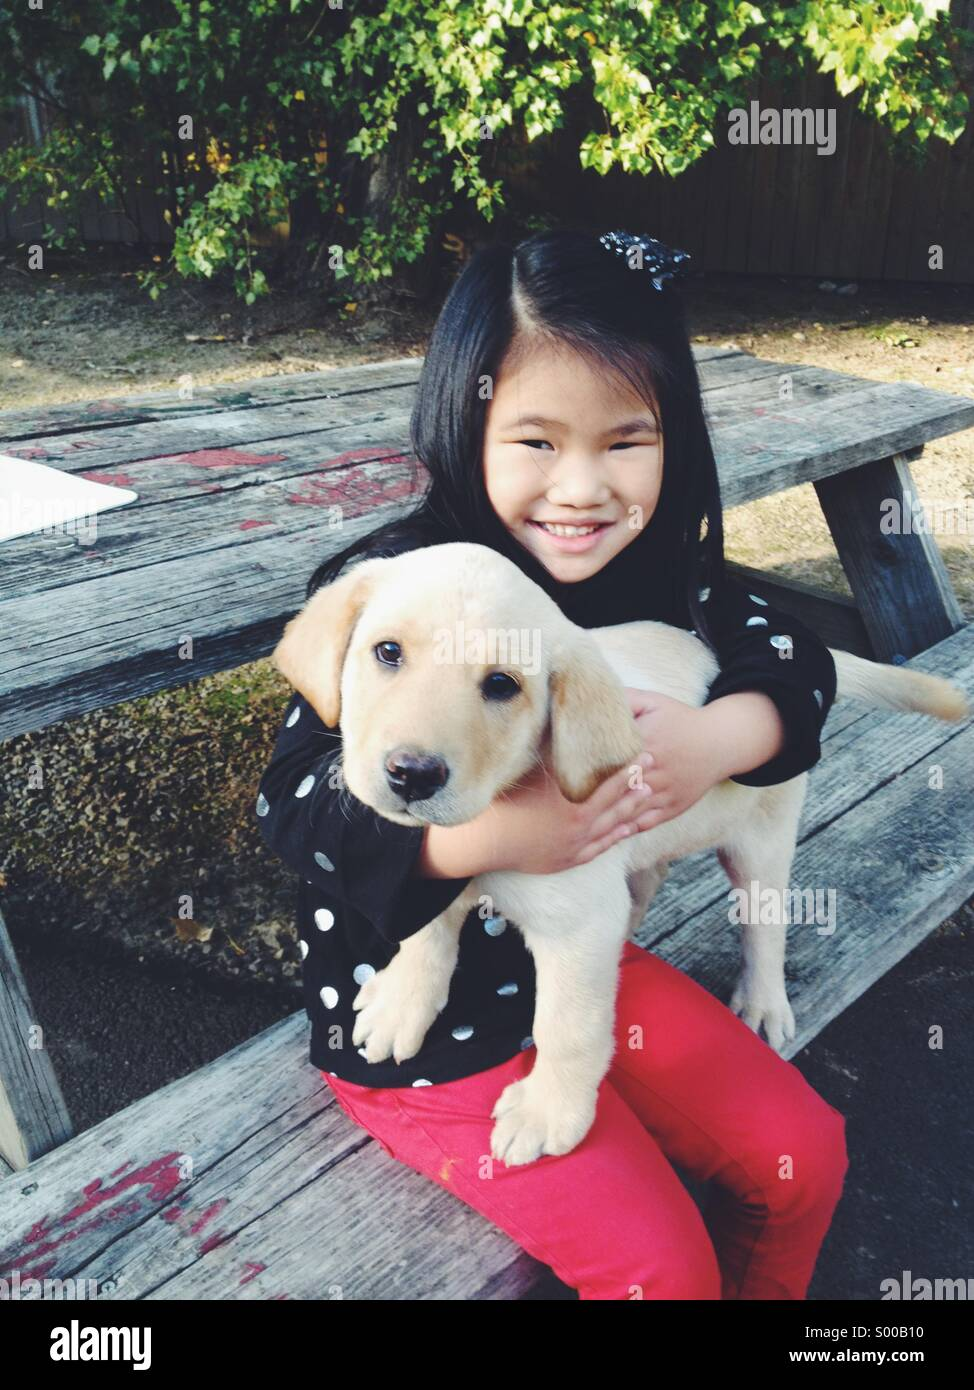 Young girl and pet puppy - Stock Image